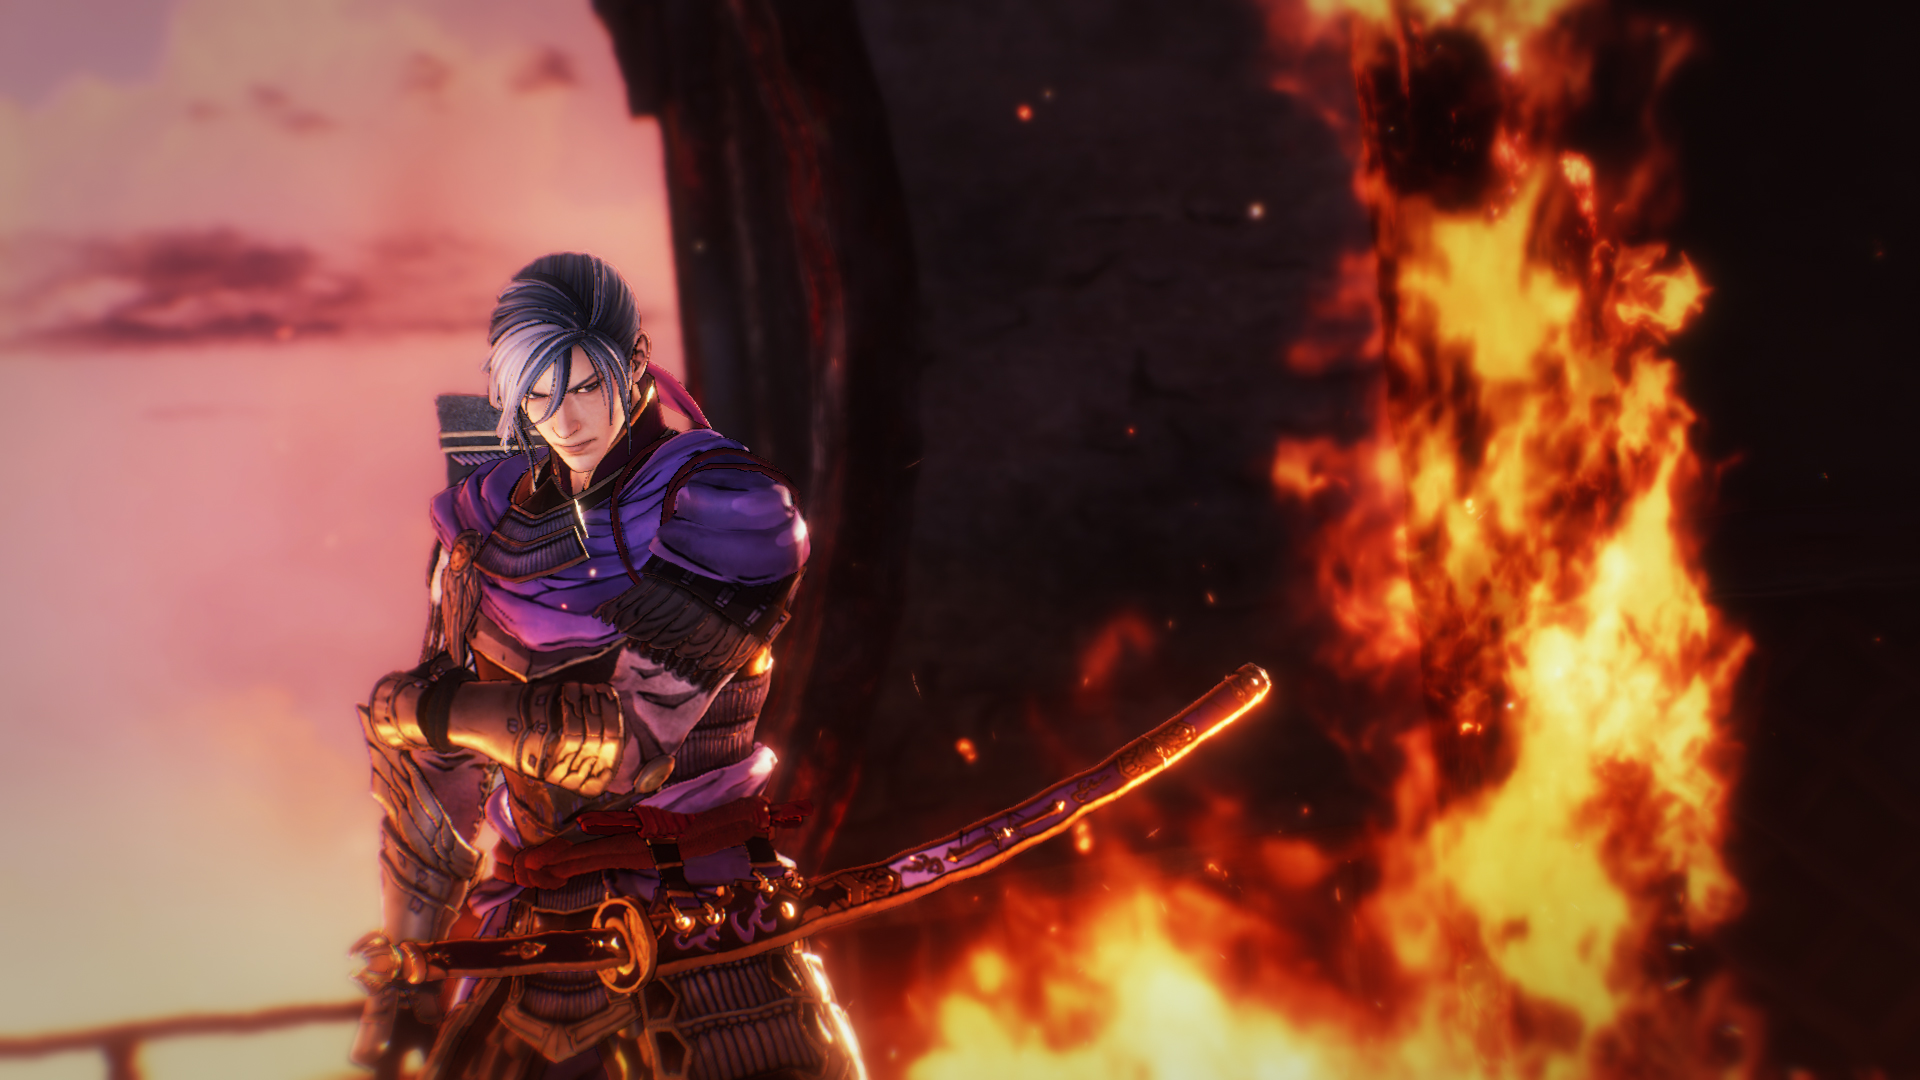 One of the characters in Samurai Warriors 5 stands in front of a blazing fire